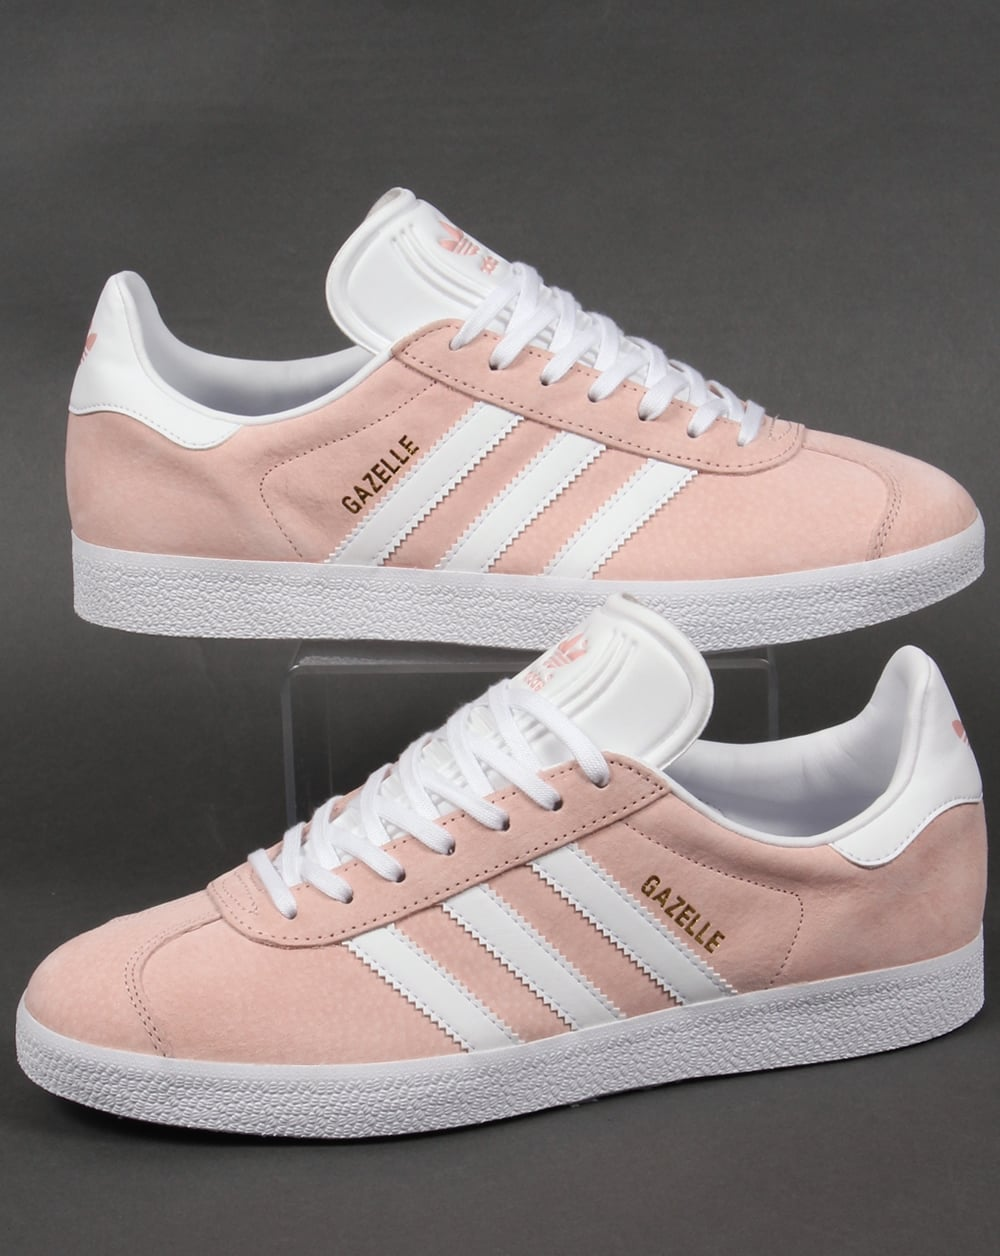 49be0e055f3 adidas Trainers Adidas Gazelle Trainers Light Pink White